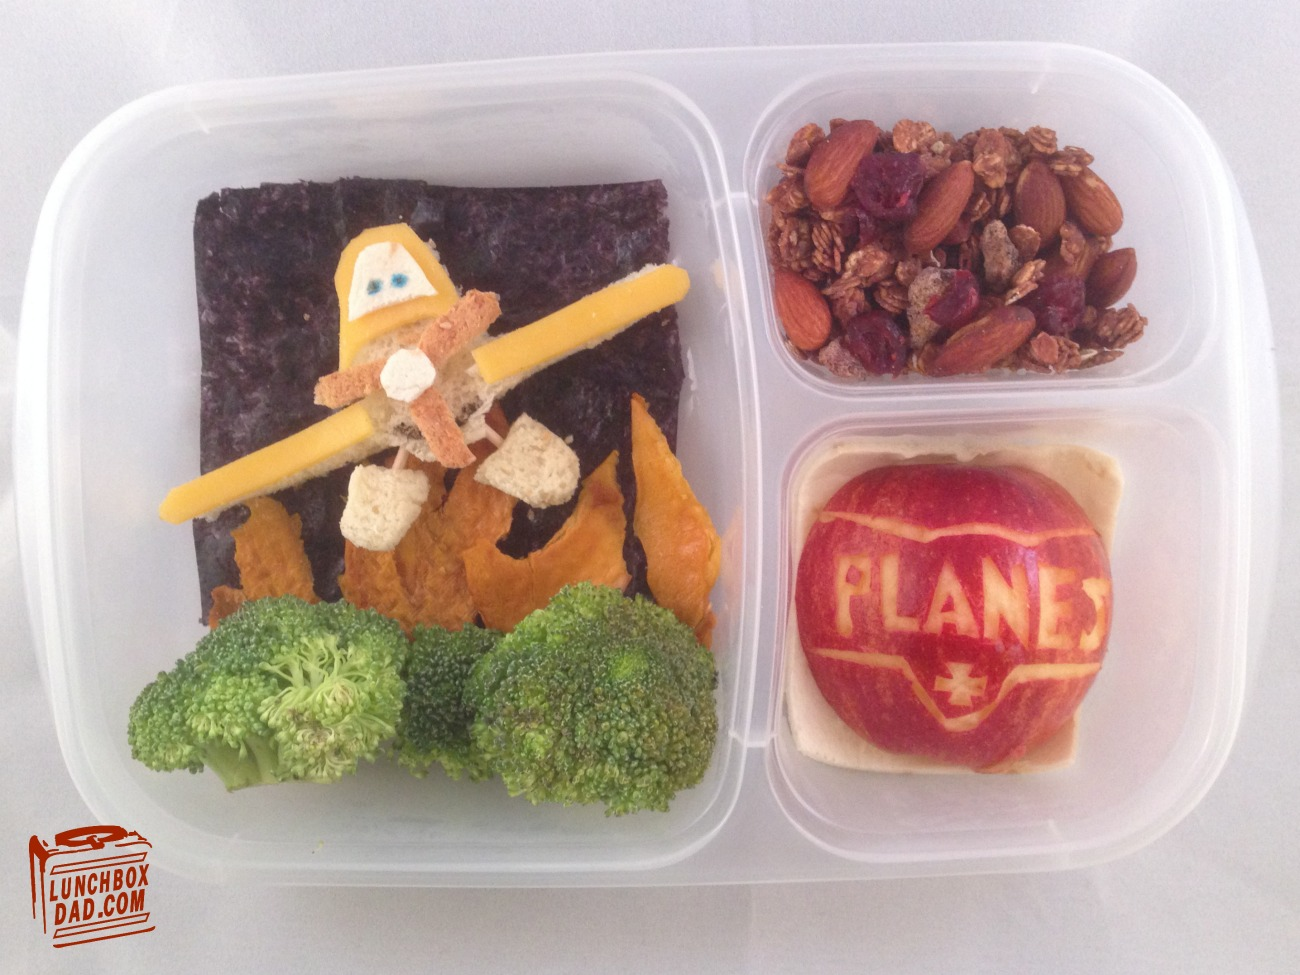 Disney Planes Lunch